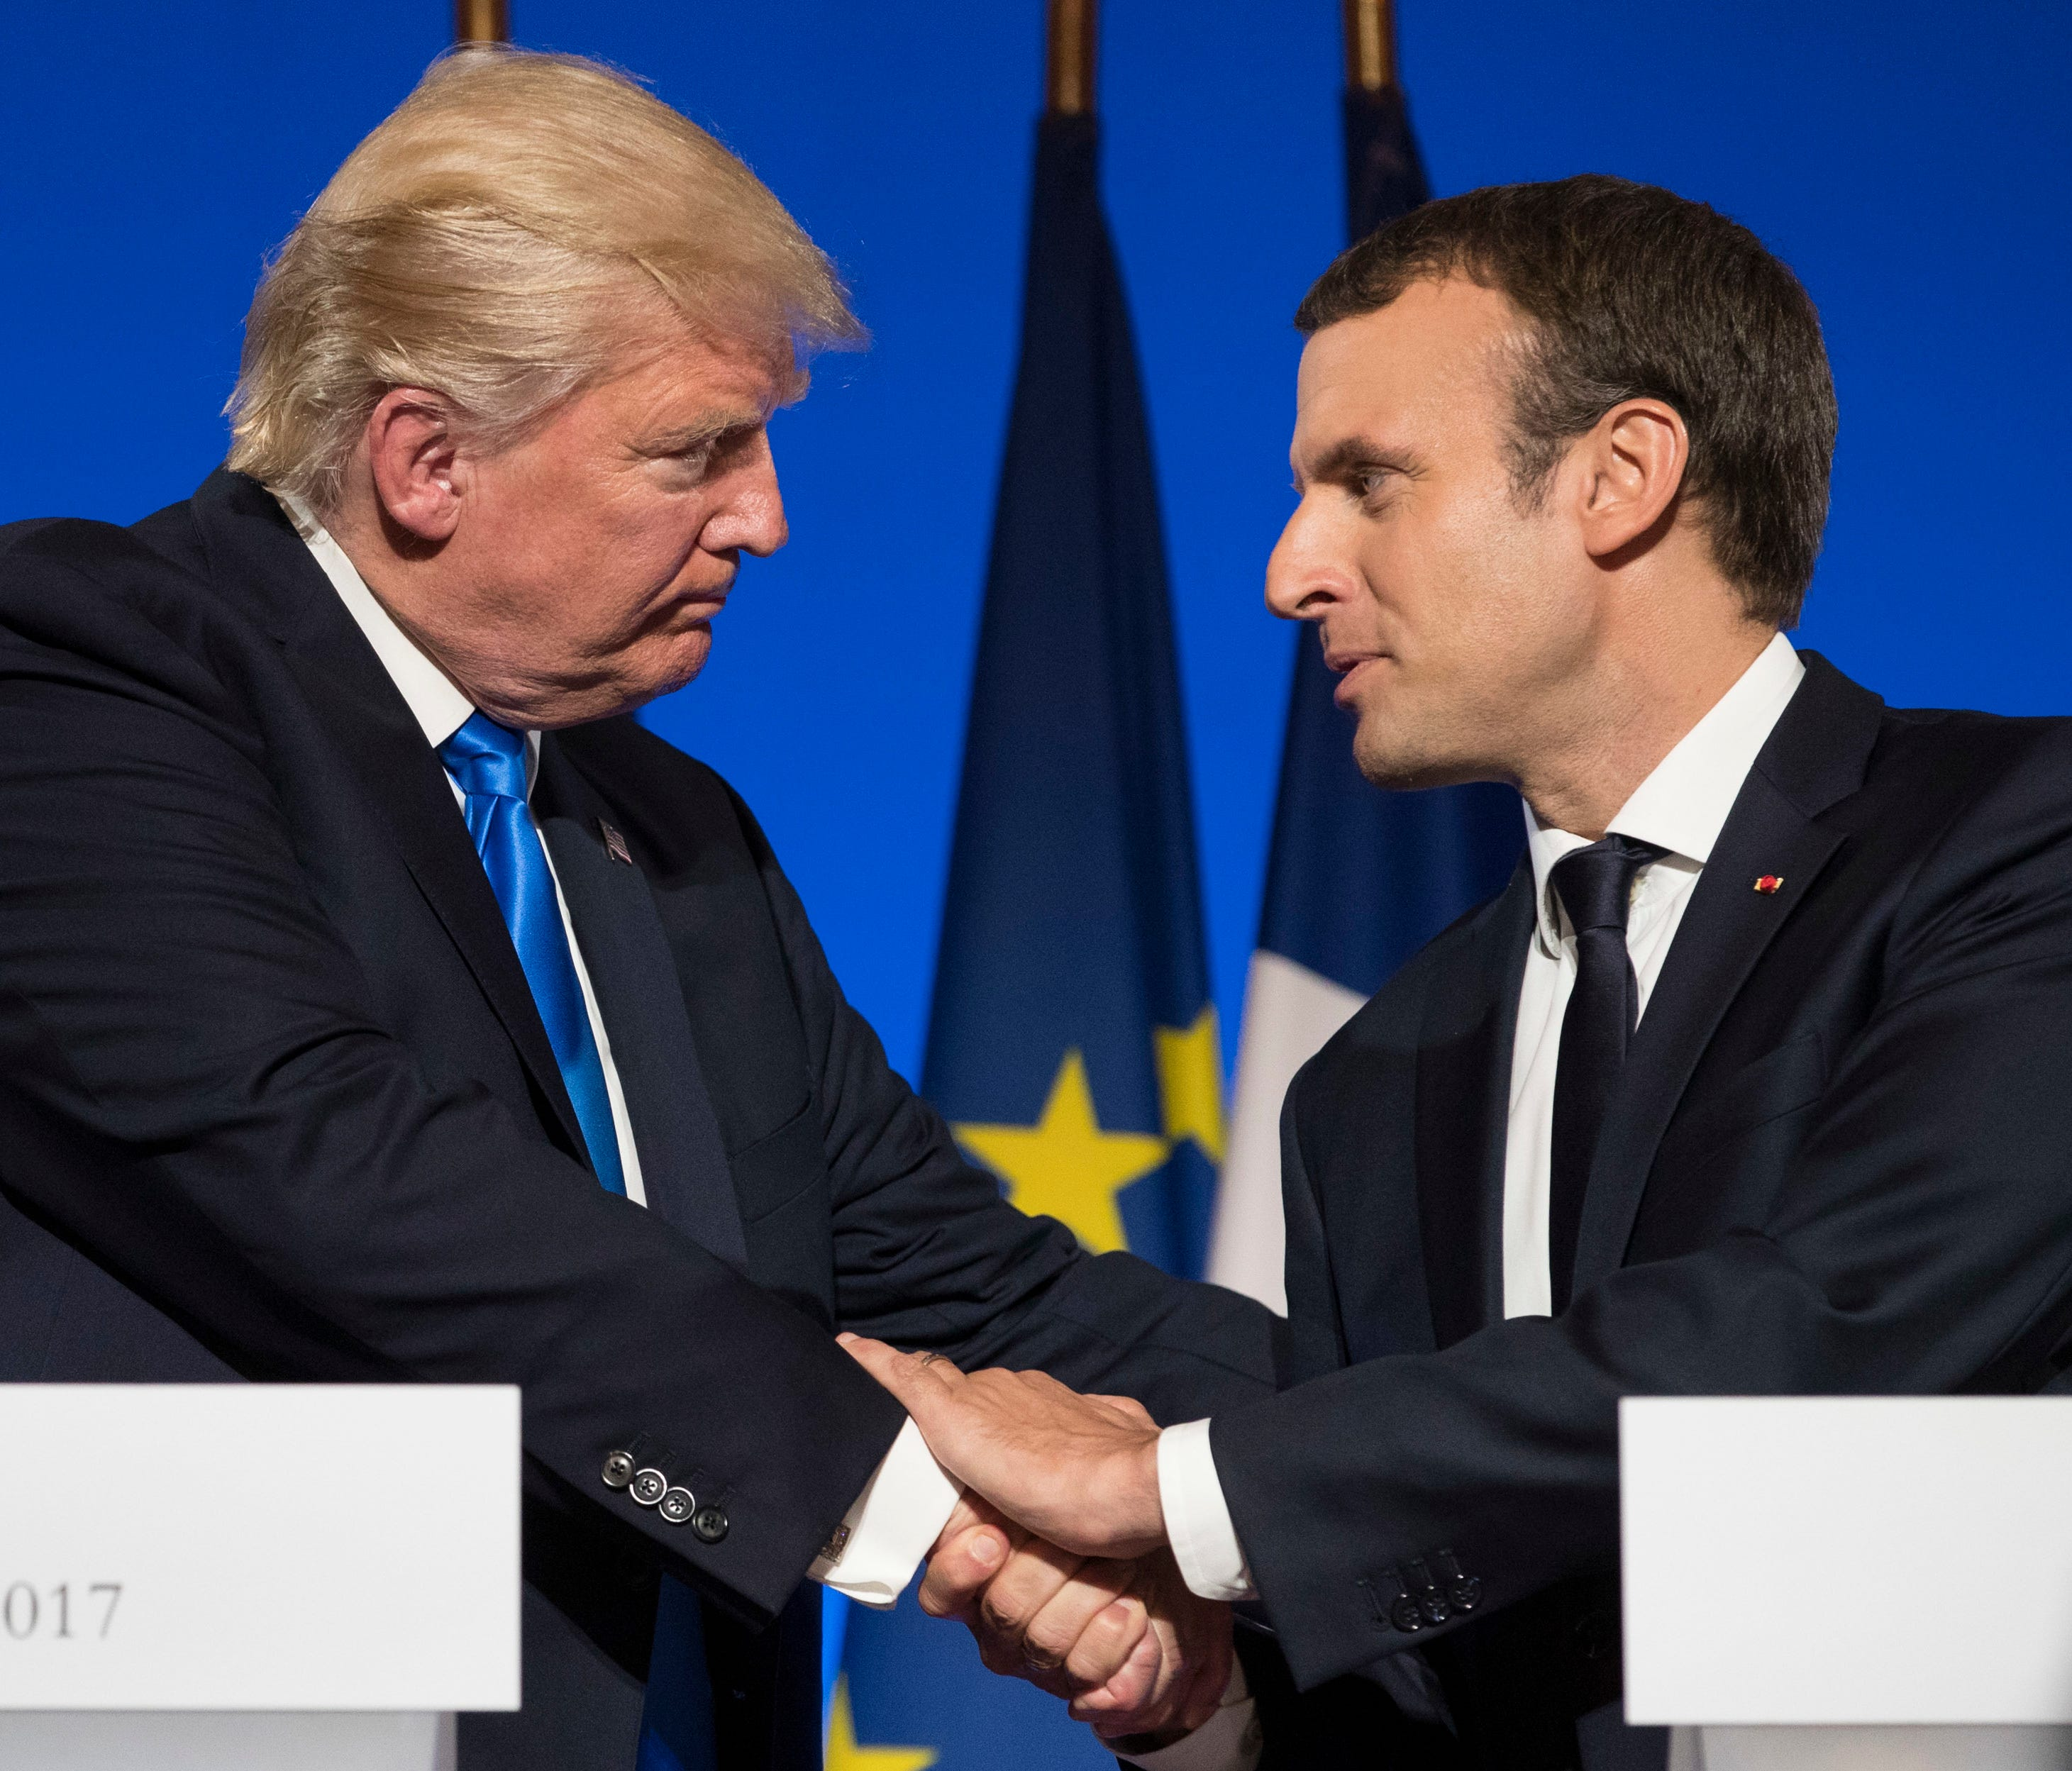 President Trump and French President Emmanuel Macron shake hands at the conclusion of a joint news conference at the Elysee Palace in Paris.